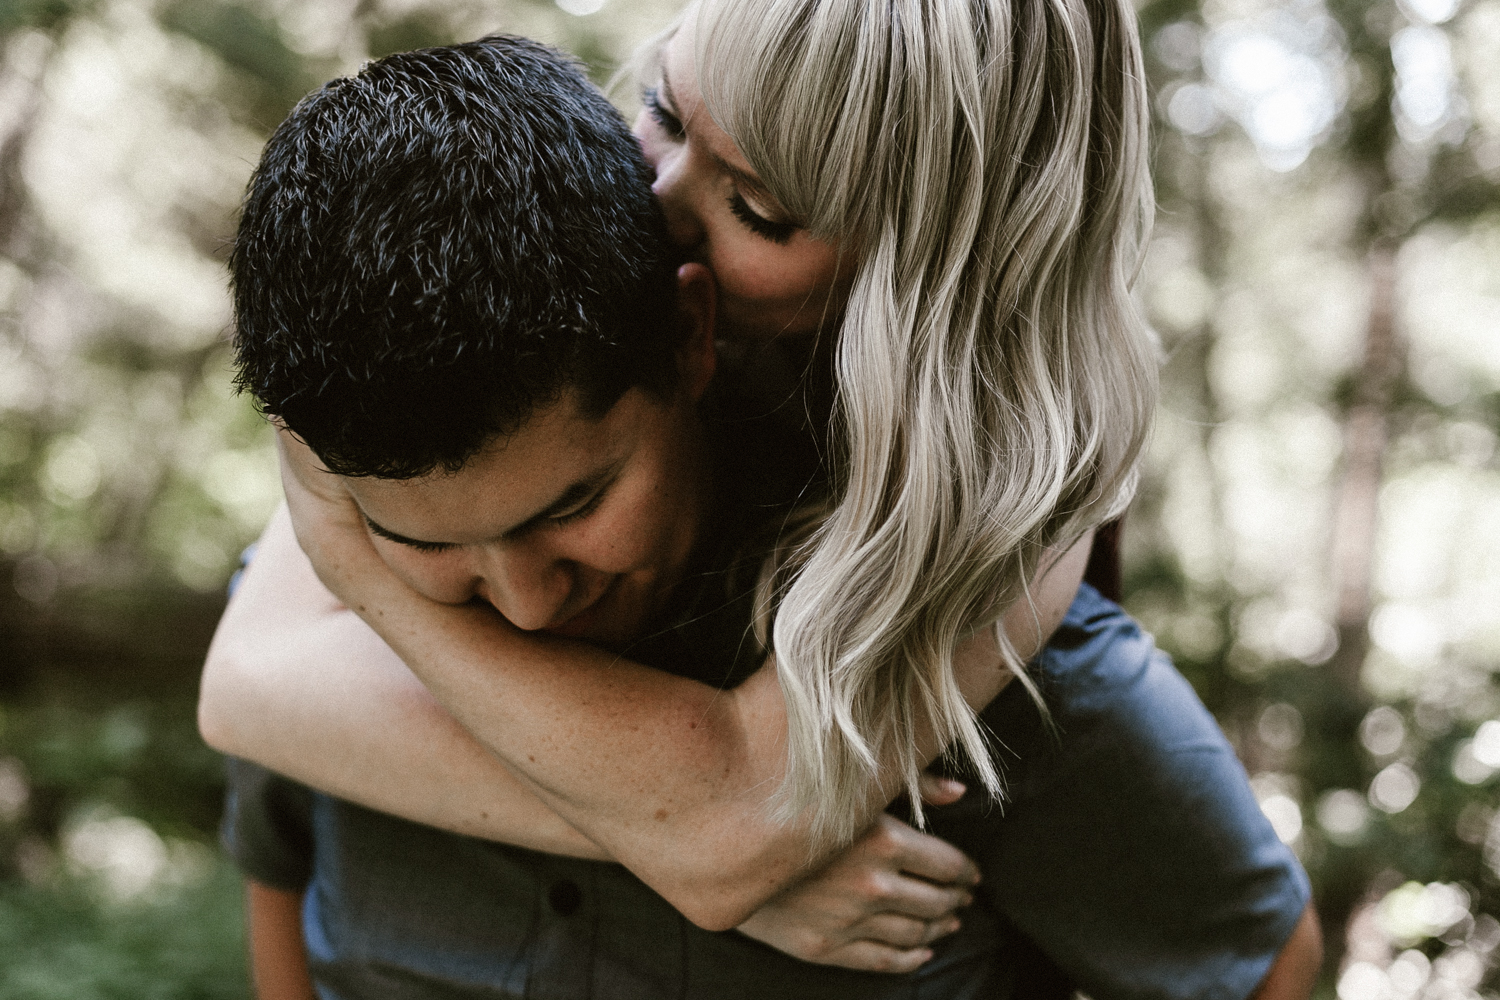 man and woman embrace in the Northwest forest